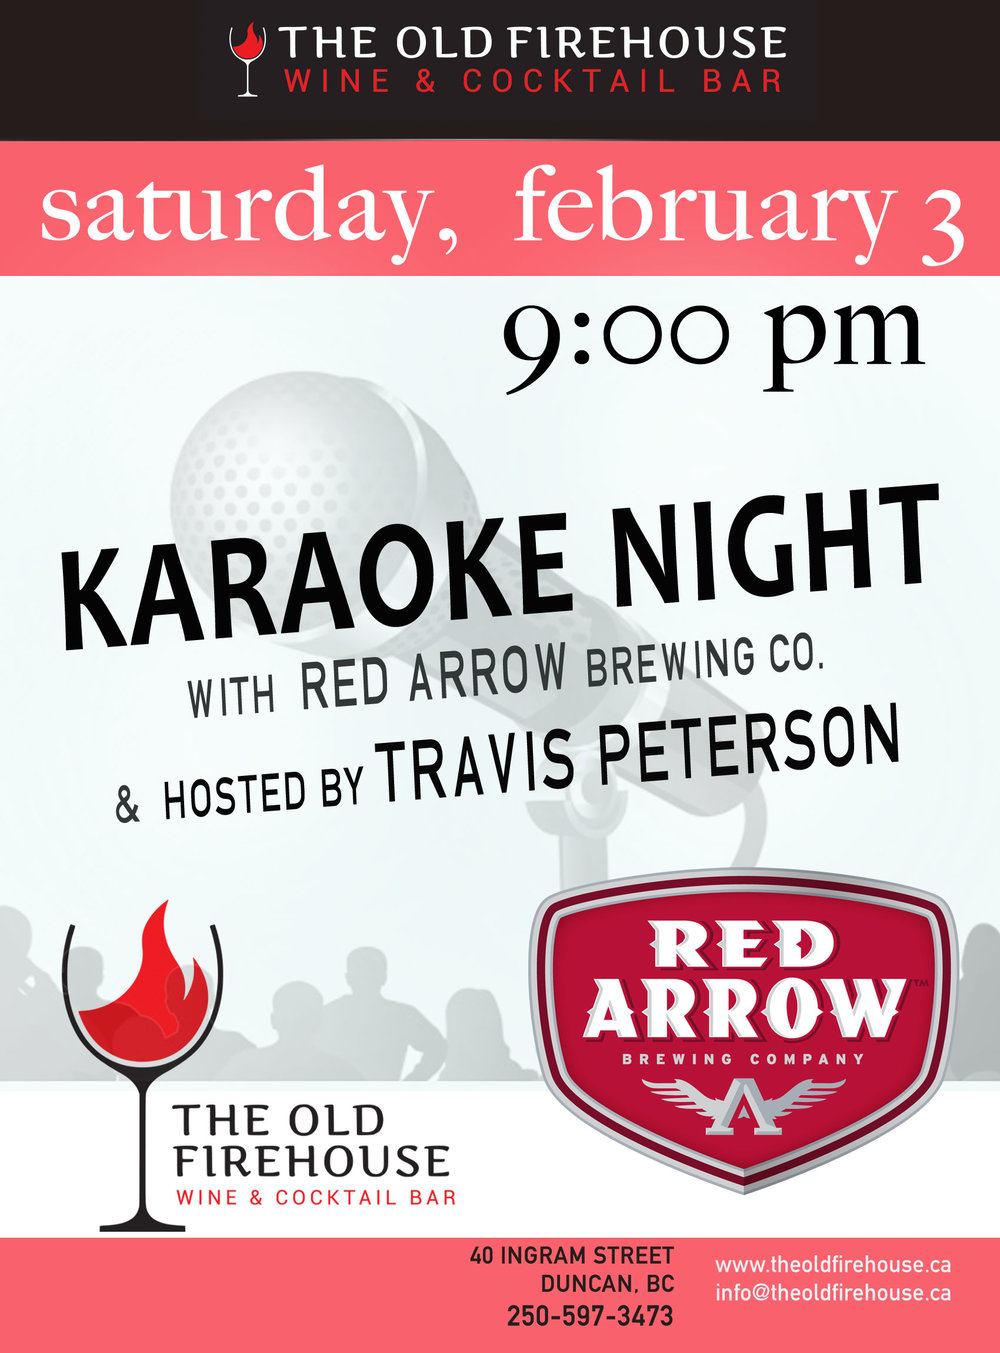 karaoke-poster-red-arrow-February-3.jpg